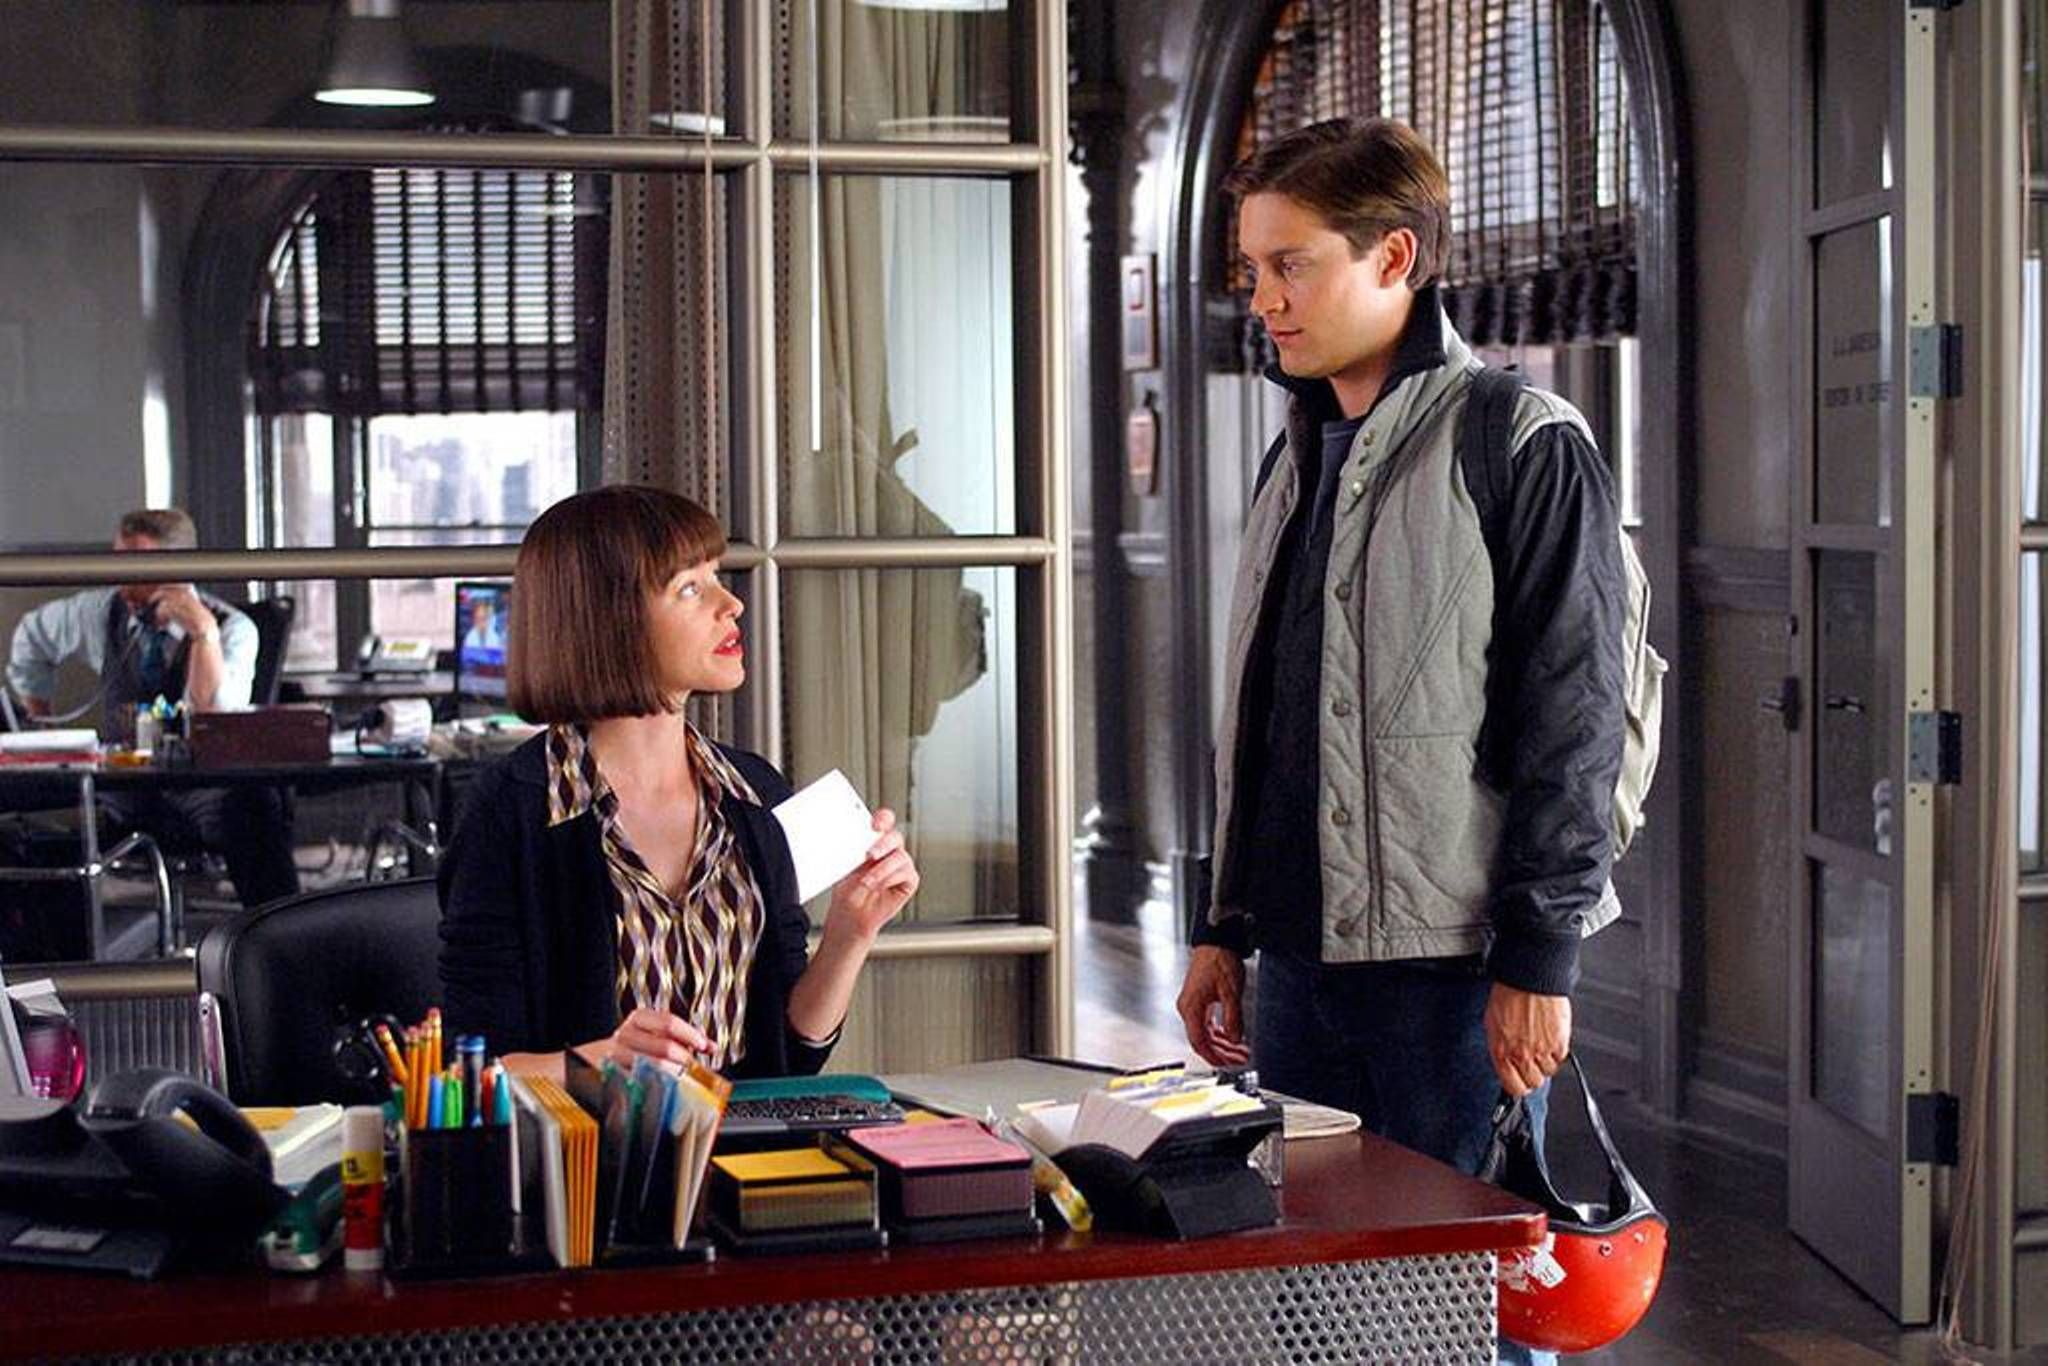 Spider Man Movie Still 2002 L To R Elizabeth Banks Tobey Maguire Despite Being Sixteen Months Older Than Maguir Spiderman Spider Man 2 Elizabeth Banks